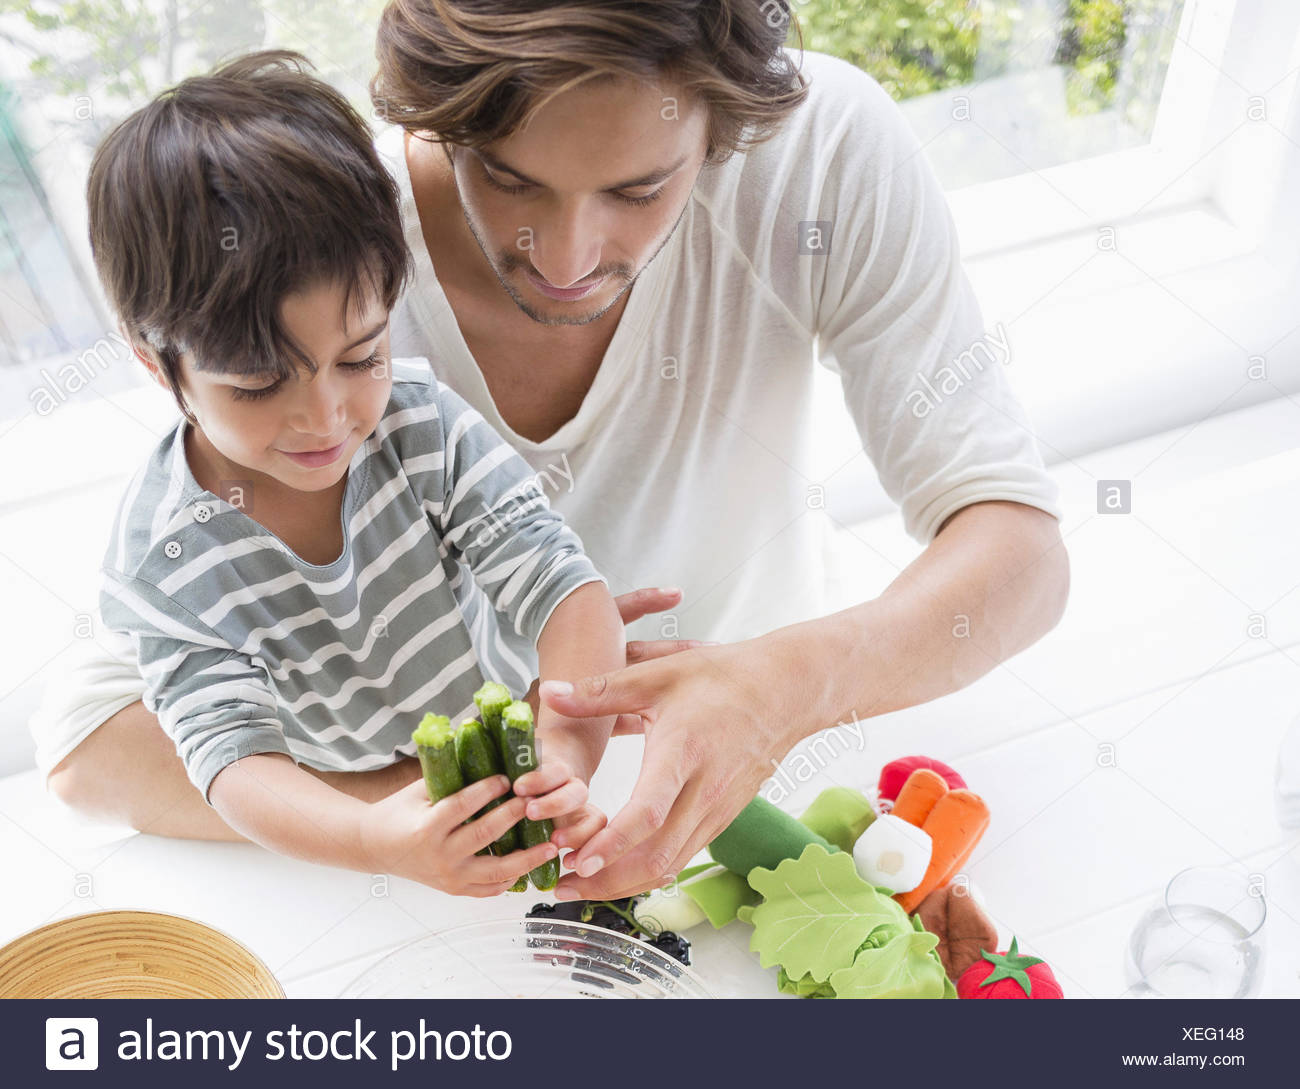 Happy young family preparing vegetables at home - Stock Image